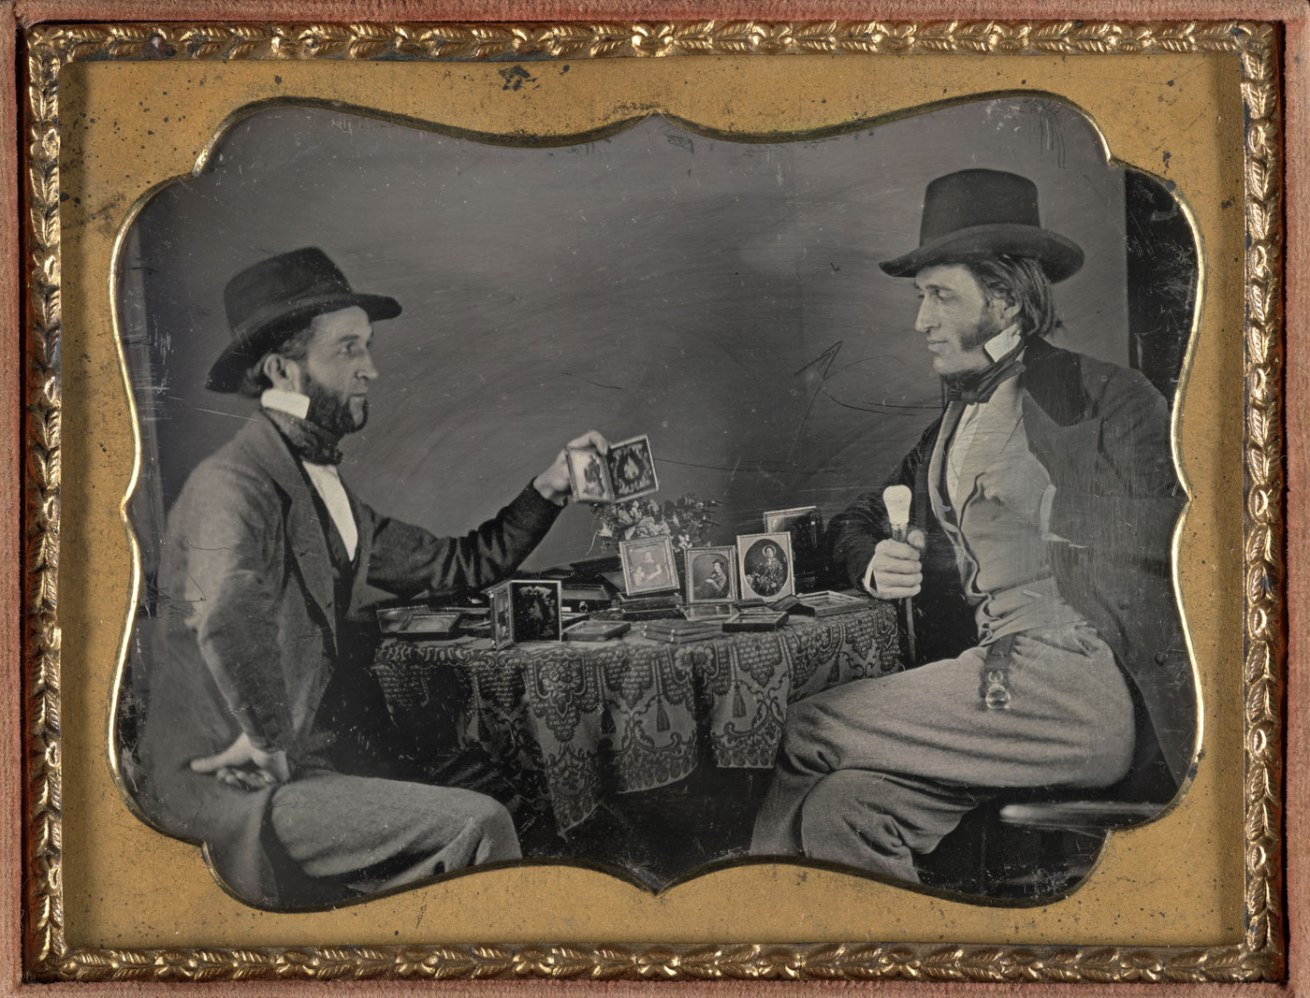 Fotó: Unknown Maker (American)<br />A Showing of Daguerreotypes<br />c. 1850<br />Daguerreotype, quarter plate<br />3 ¼ x 4 ¼ inches<br />The Nelson-Atkins Museum of Art, Gift of Hallmark Cards, Inc.,<br />© Nelson Gallery Foundation